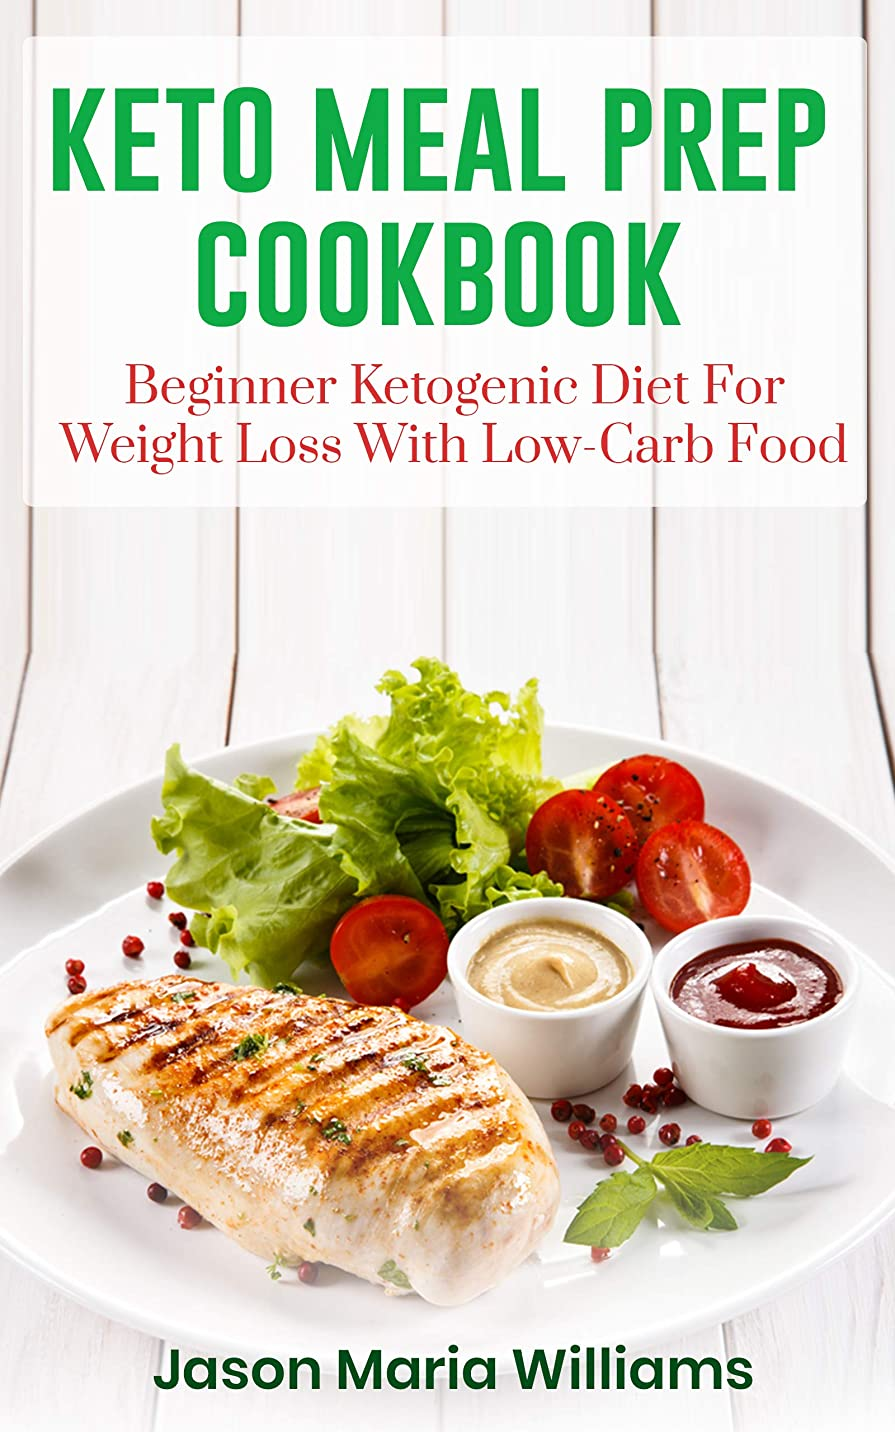 Keto Meal Prep Cookbook: Beginners Ketogenic Diet For Weight Loss With Low-Carb Food. 21 Day Diet With Clean Eating Recipes: the Fast Guide for Save Time & Money ! (English Edition)